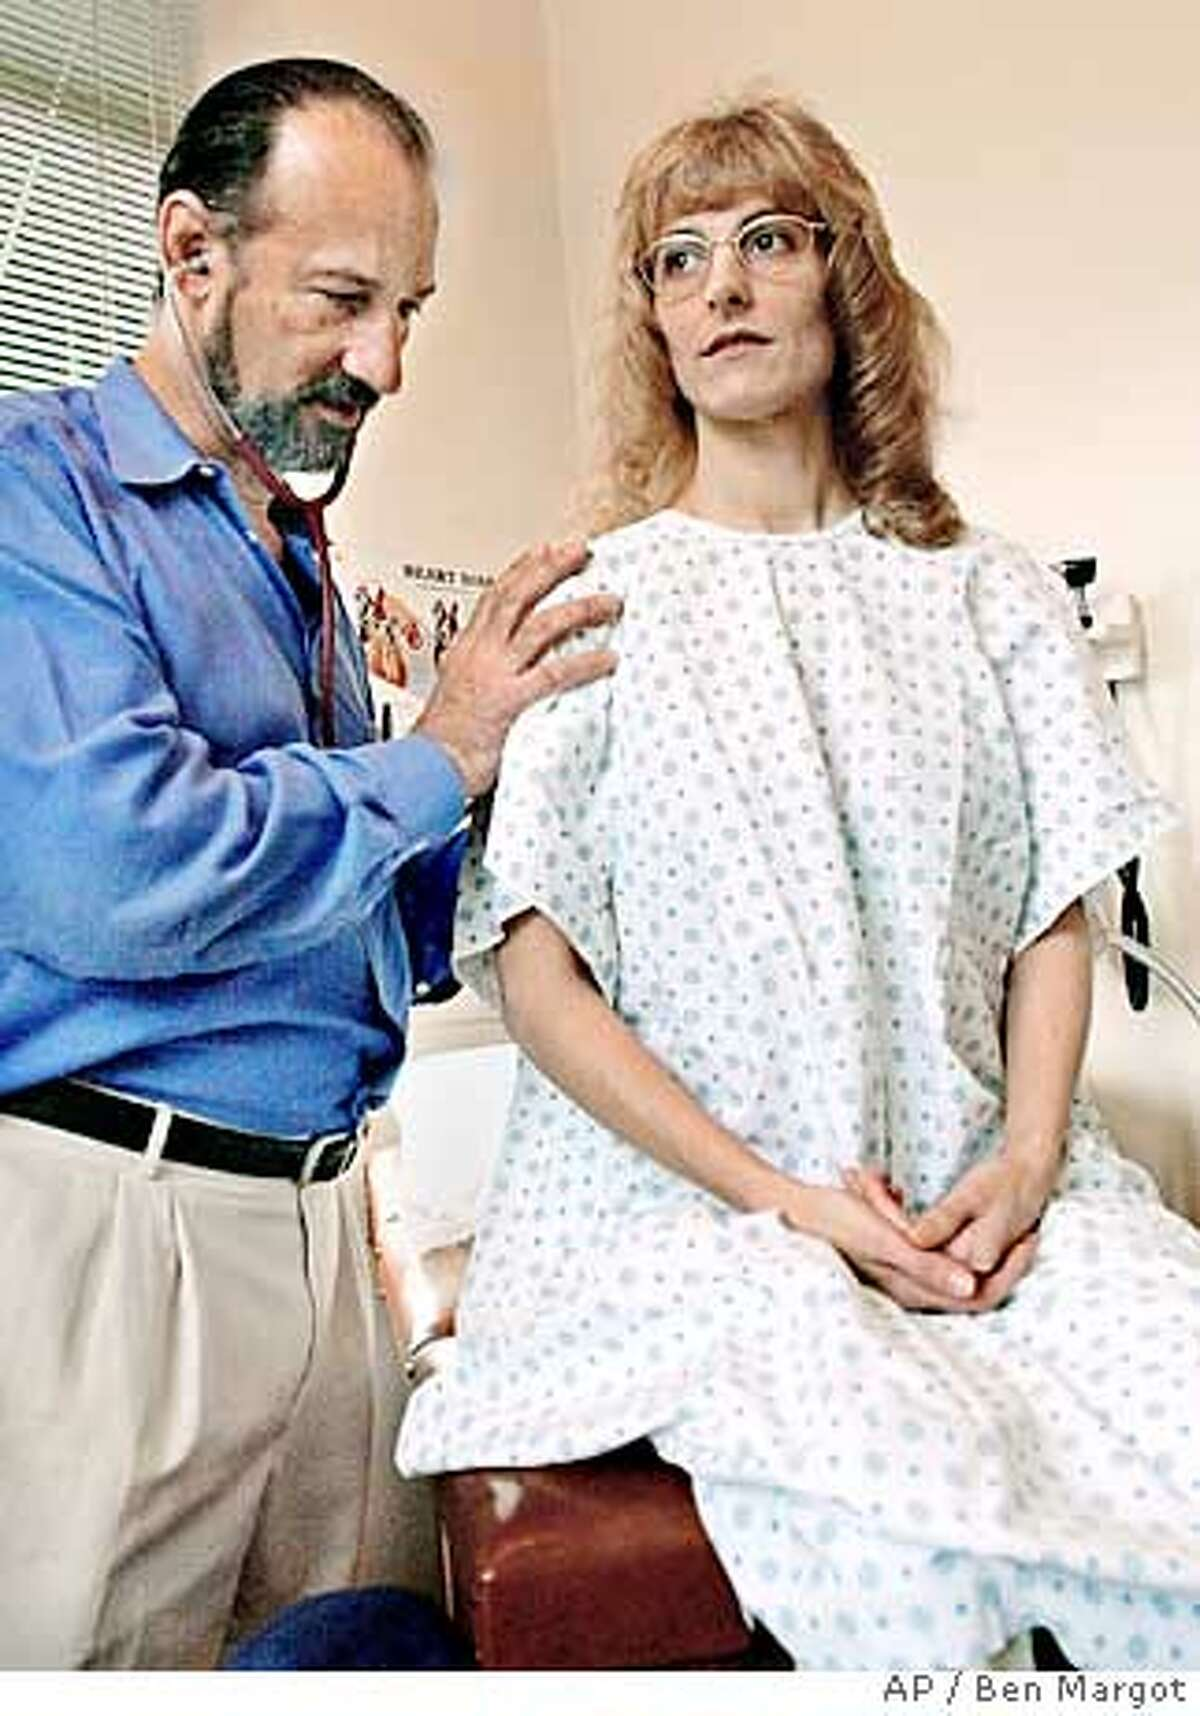 ** FILE ** Doctor Frank Lucido listens to the heartbeat of his patient Angel Raich, Jan. 13, 2003, in Berkeley, Calif. Raich sued the federal government to allow her to smoke marijuana without the fear of prosecution. An appeals court ruled Tuesday, Dec. 16, 2003, in Raich's favor, that a federal law outlawing marijuana does not apply to sick people who are allowed to smoke pot with a doctor's recommendation. (AP Photo/Ben Margot, File)